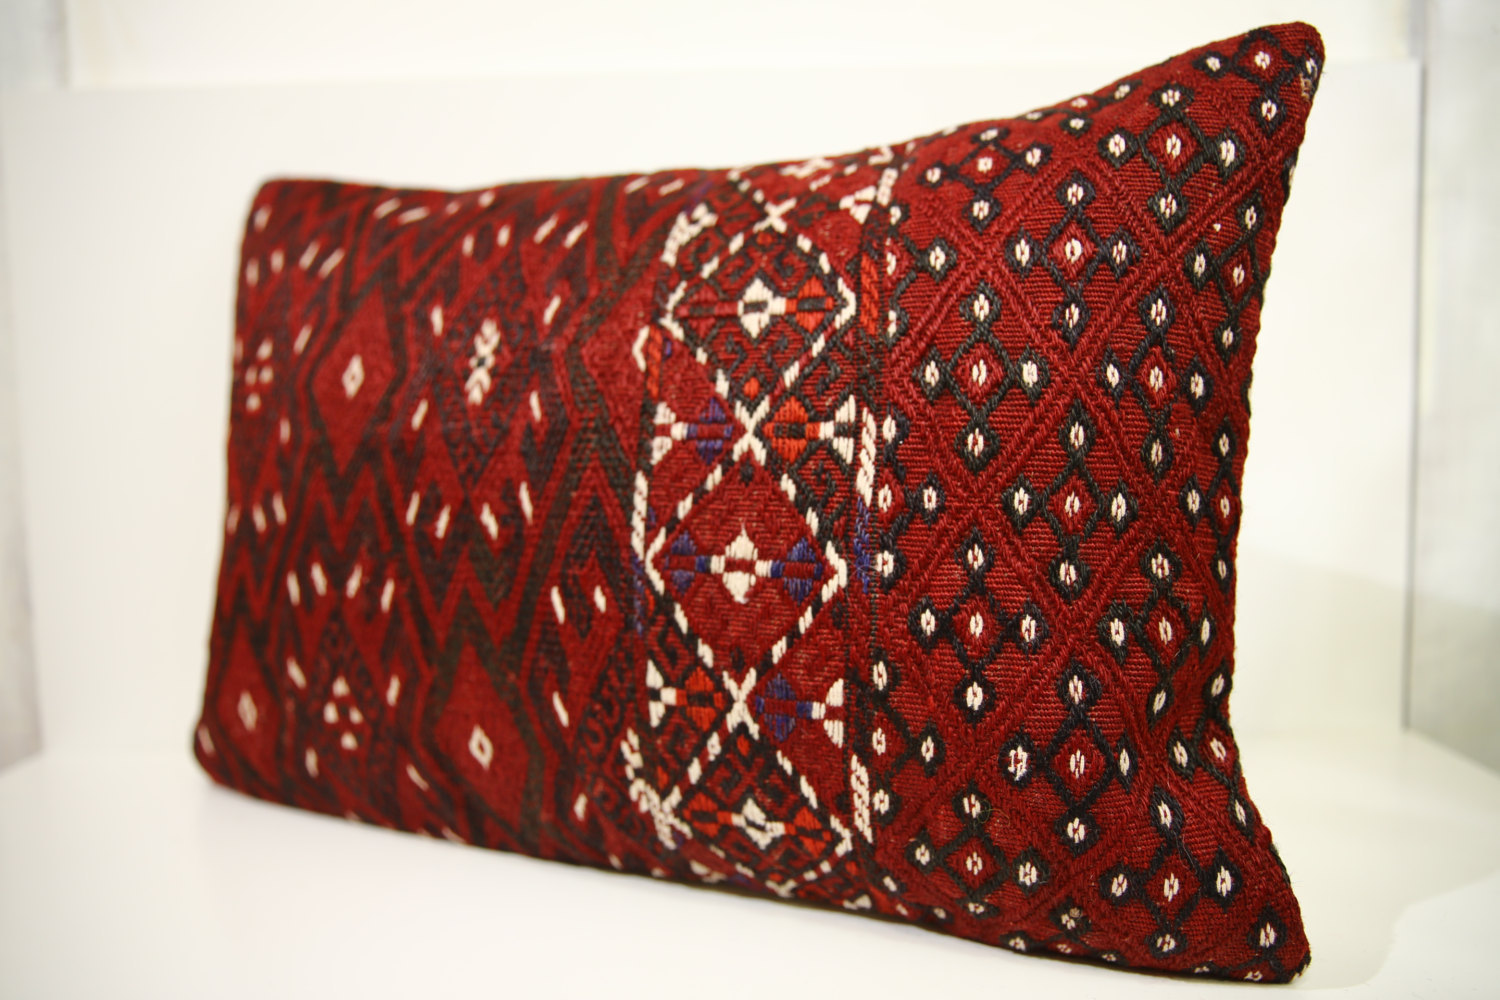 Kilim Pillows | 24x16 | Lumbar pillows | 1469 | Turkish pillows , throw pillows